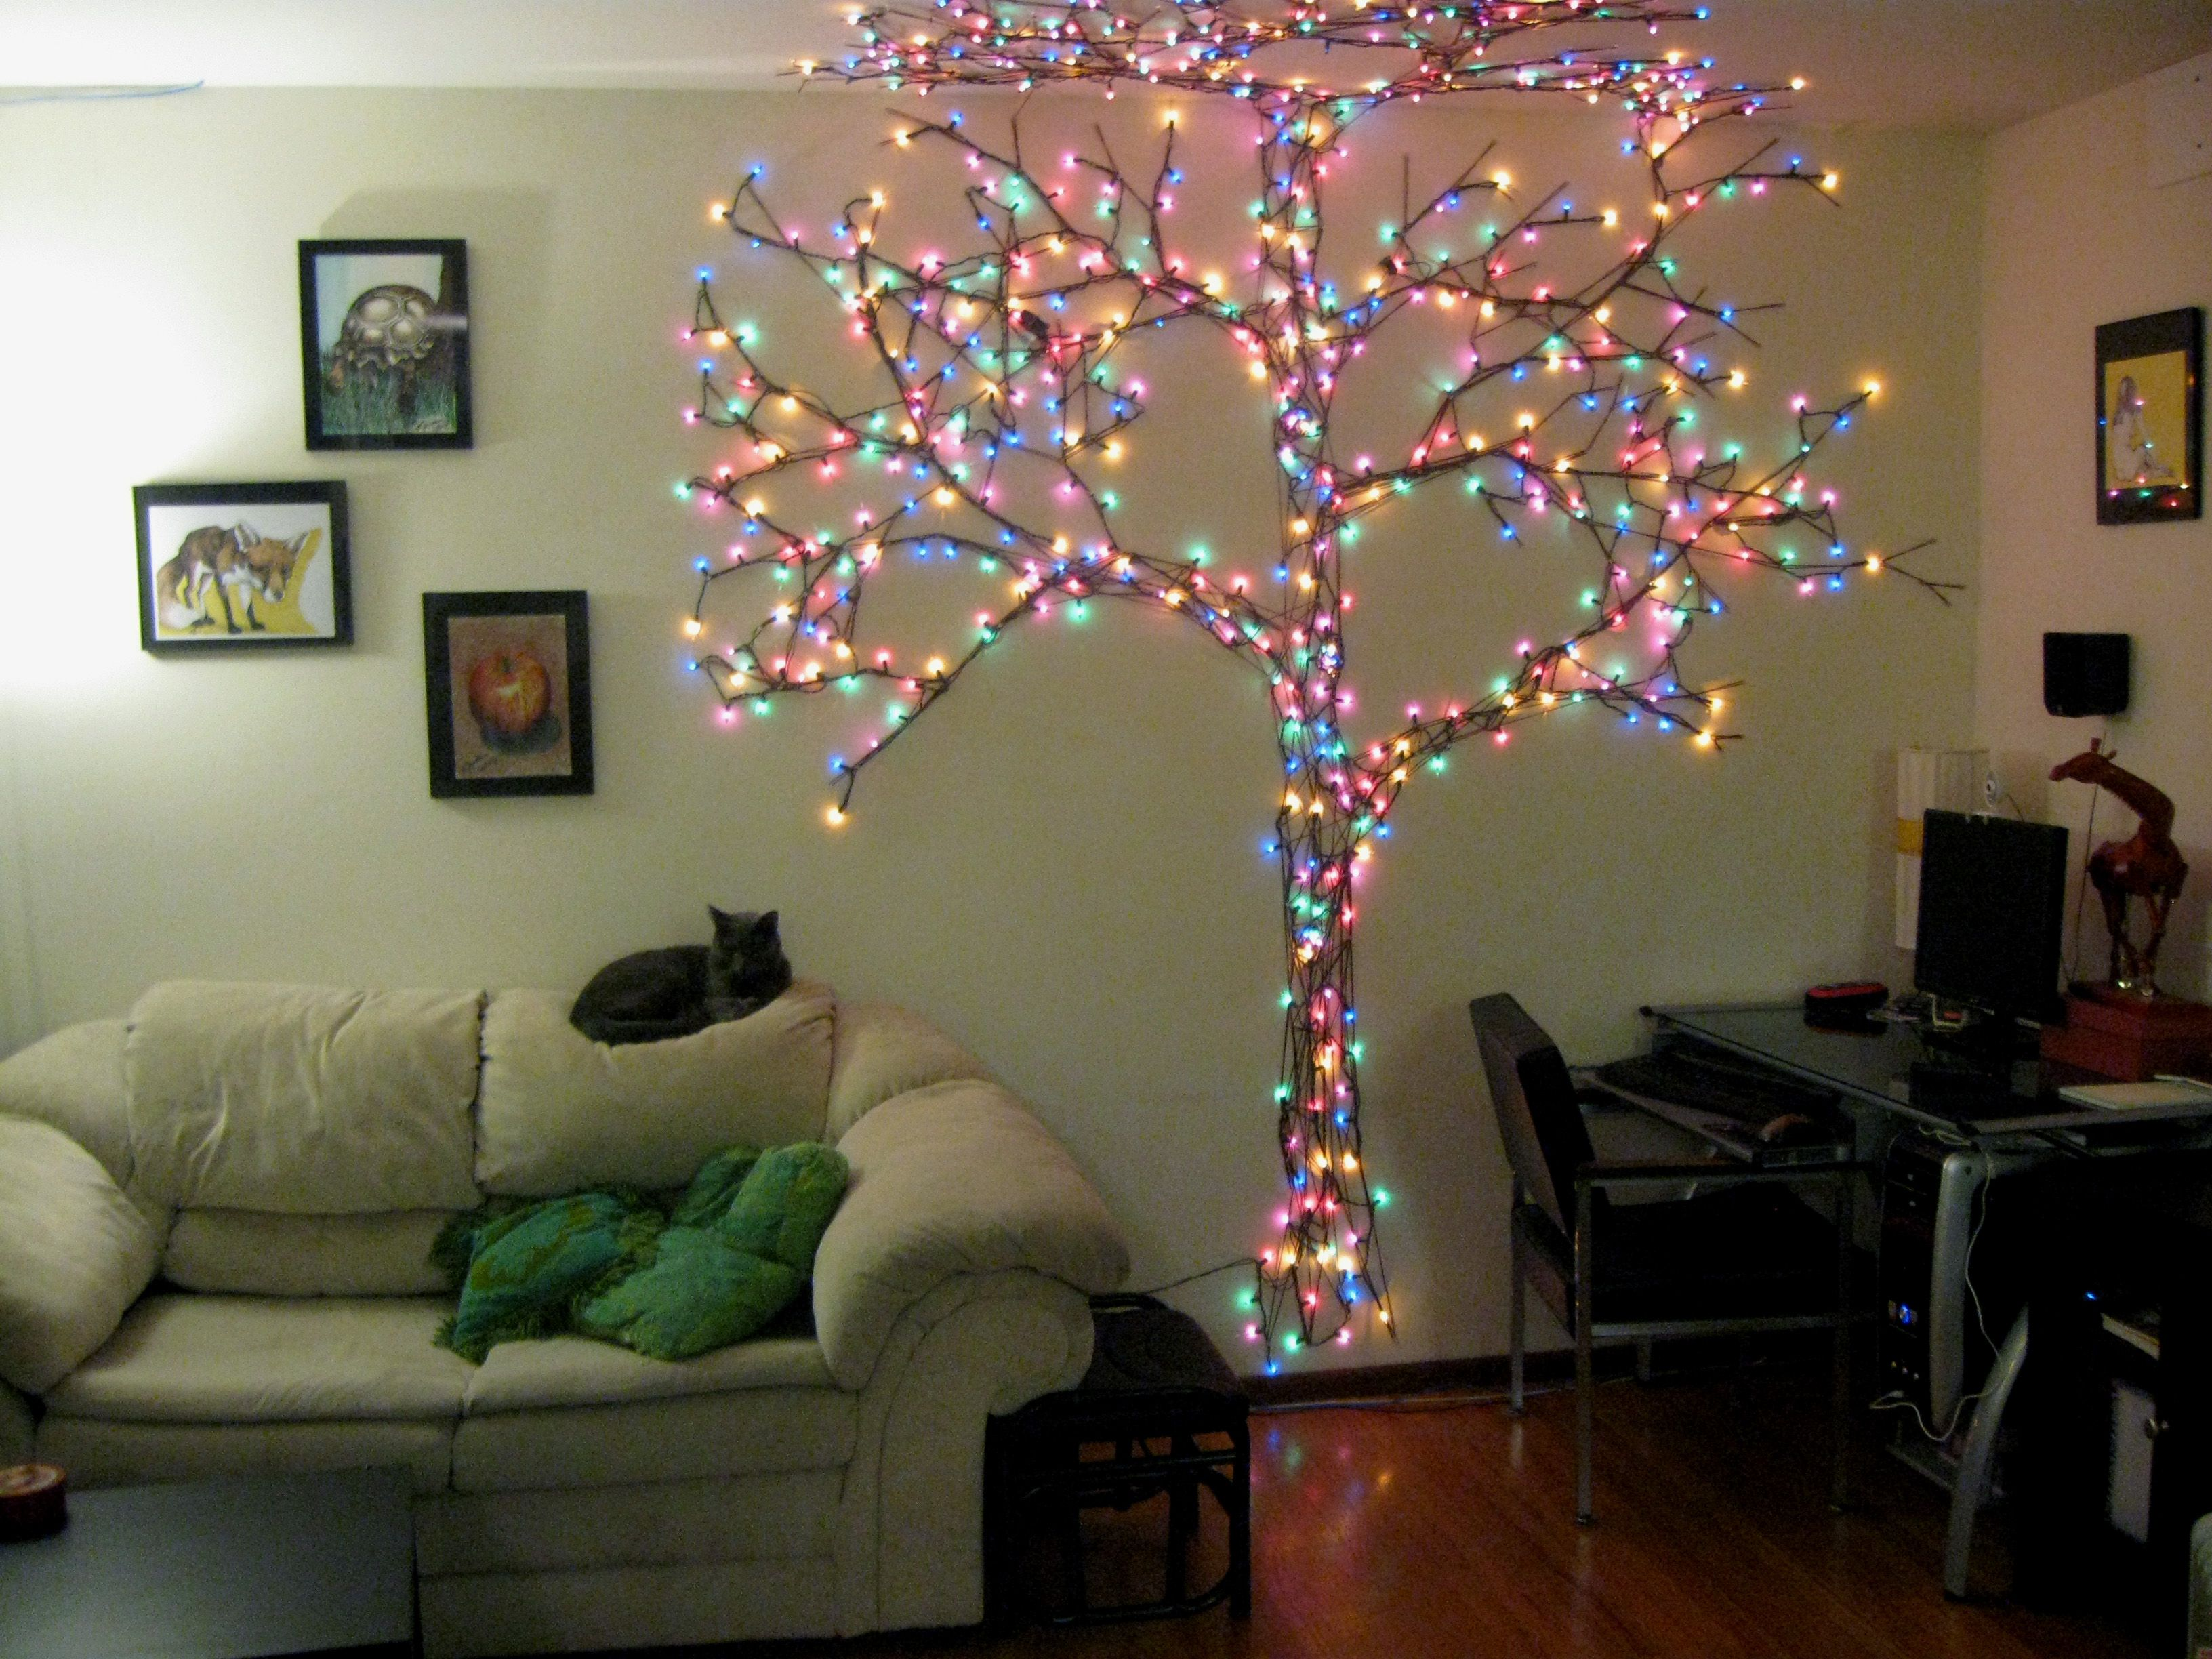 Wall Tree Made Of Lights : 25+ unique Wall christmas tree ideas on Pinterest Xmas tree decorations, Alternative christmas ...